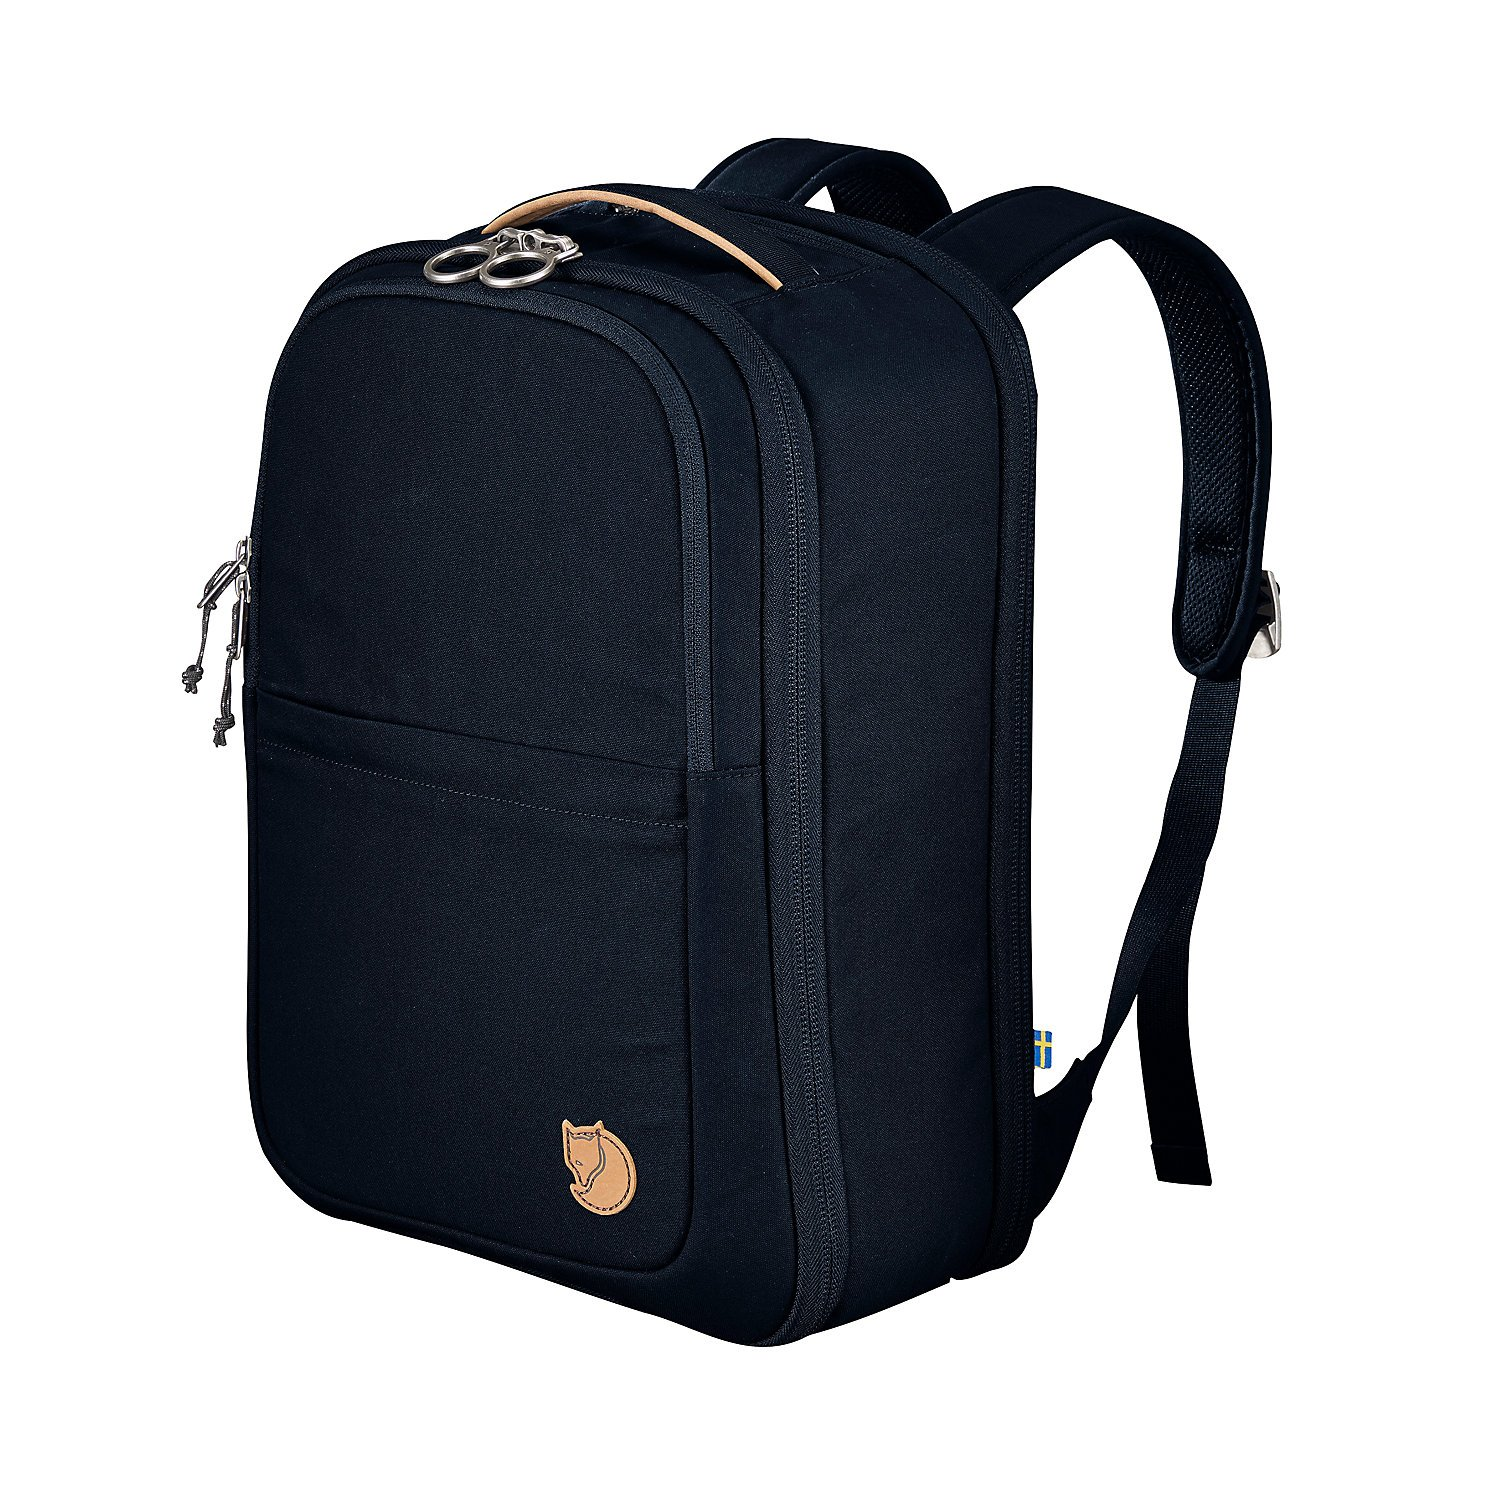 Fjallraven - Travel Pack Small Backpack for Everyday Use, Navy by Fjallraven